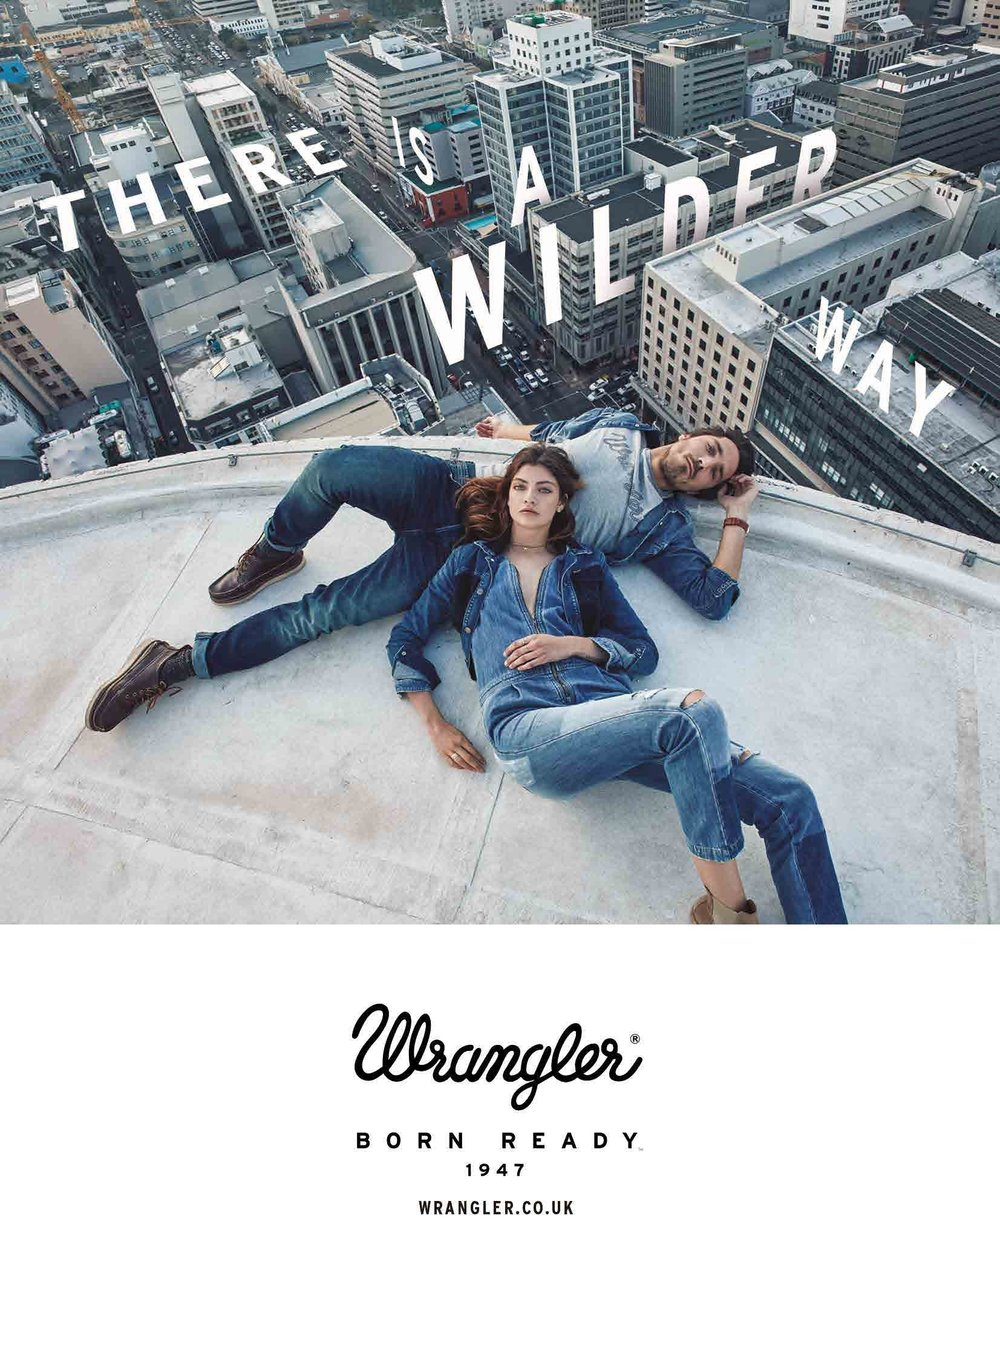 55b8f09d Wrangler Wild City: Breaking through on Instagram by +760% — WE ARE Pi